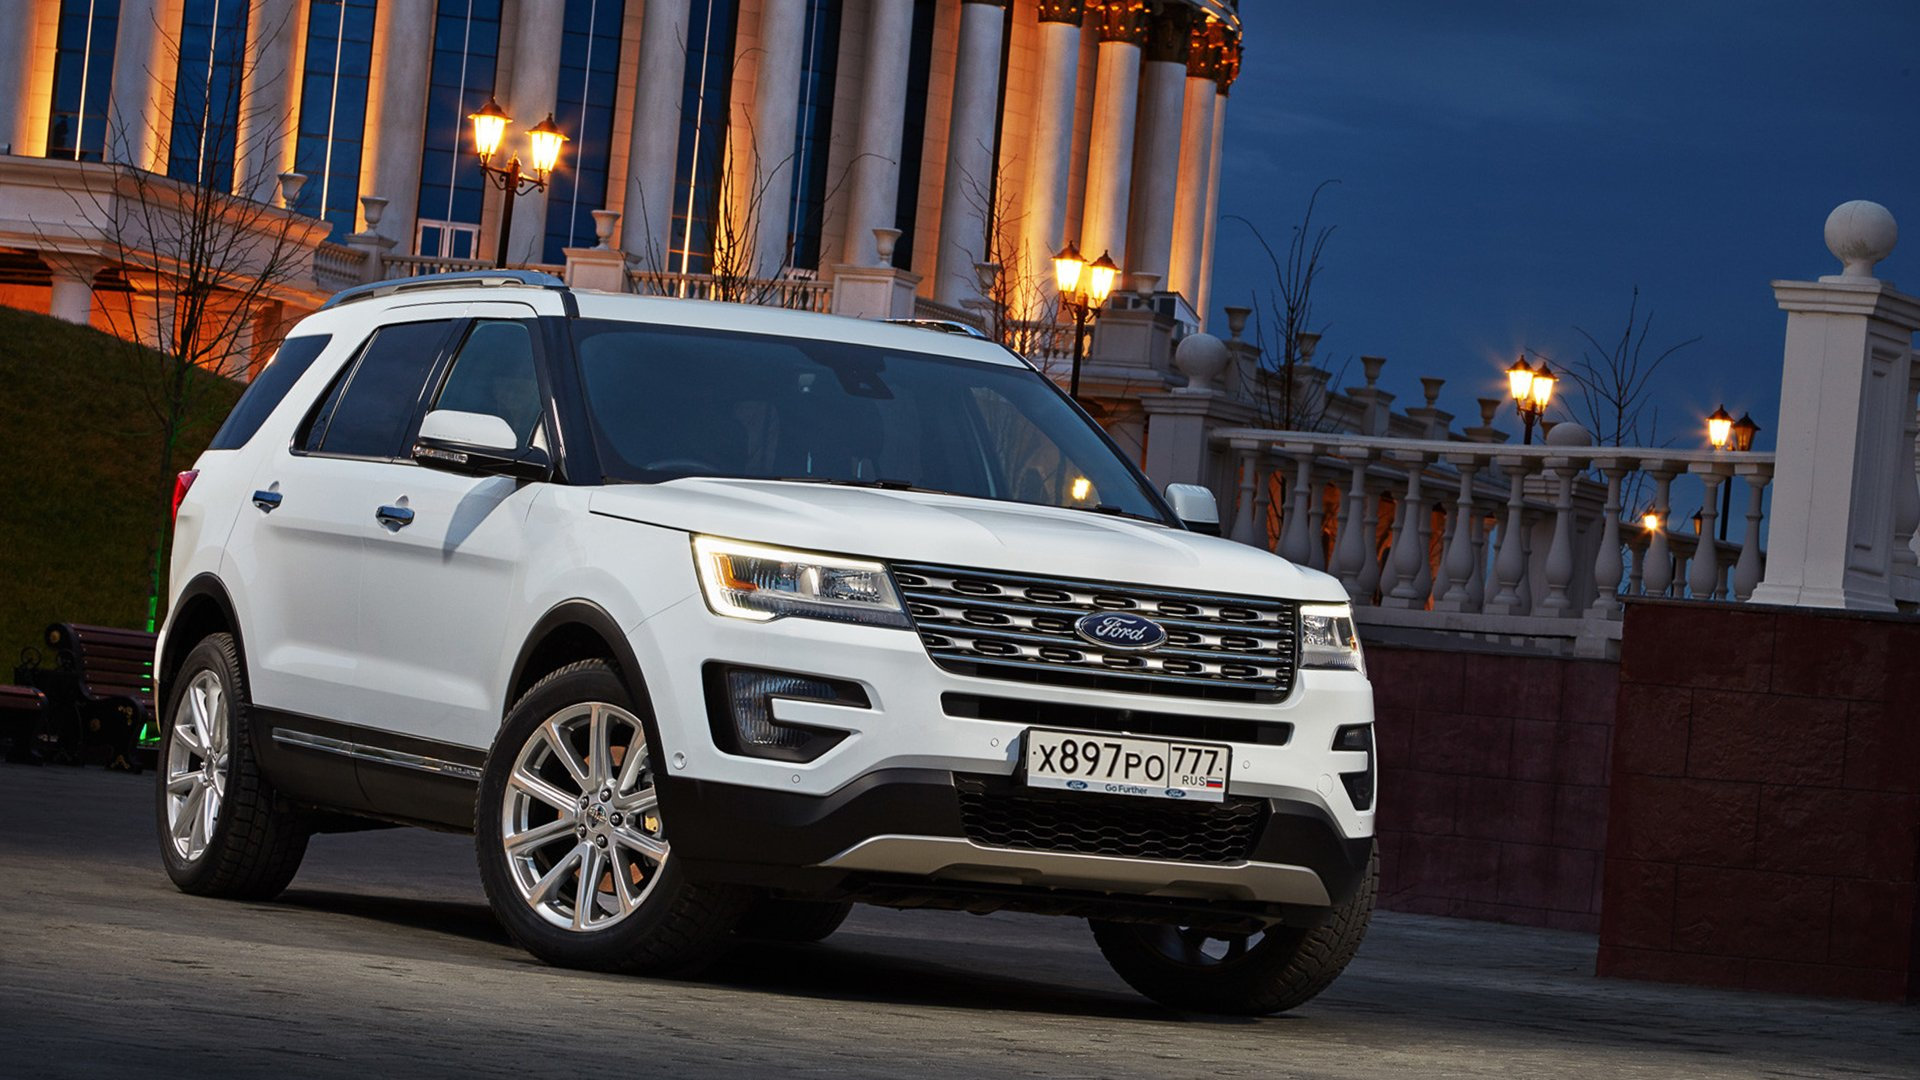 White Ford Explorer 2019 HD